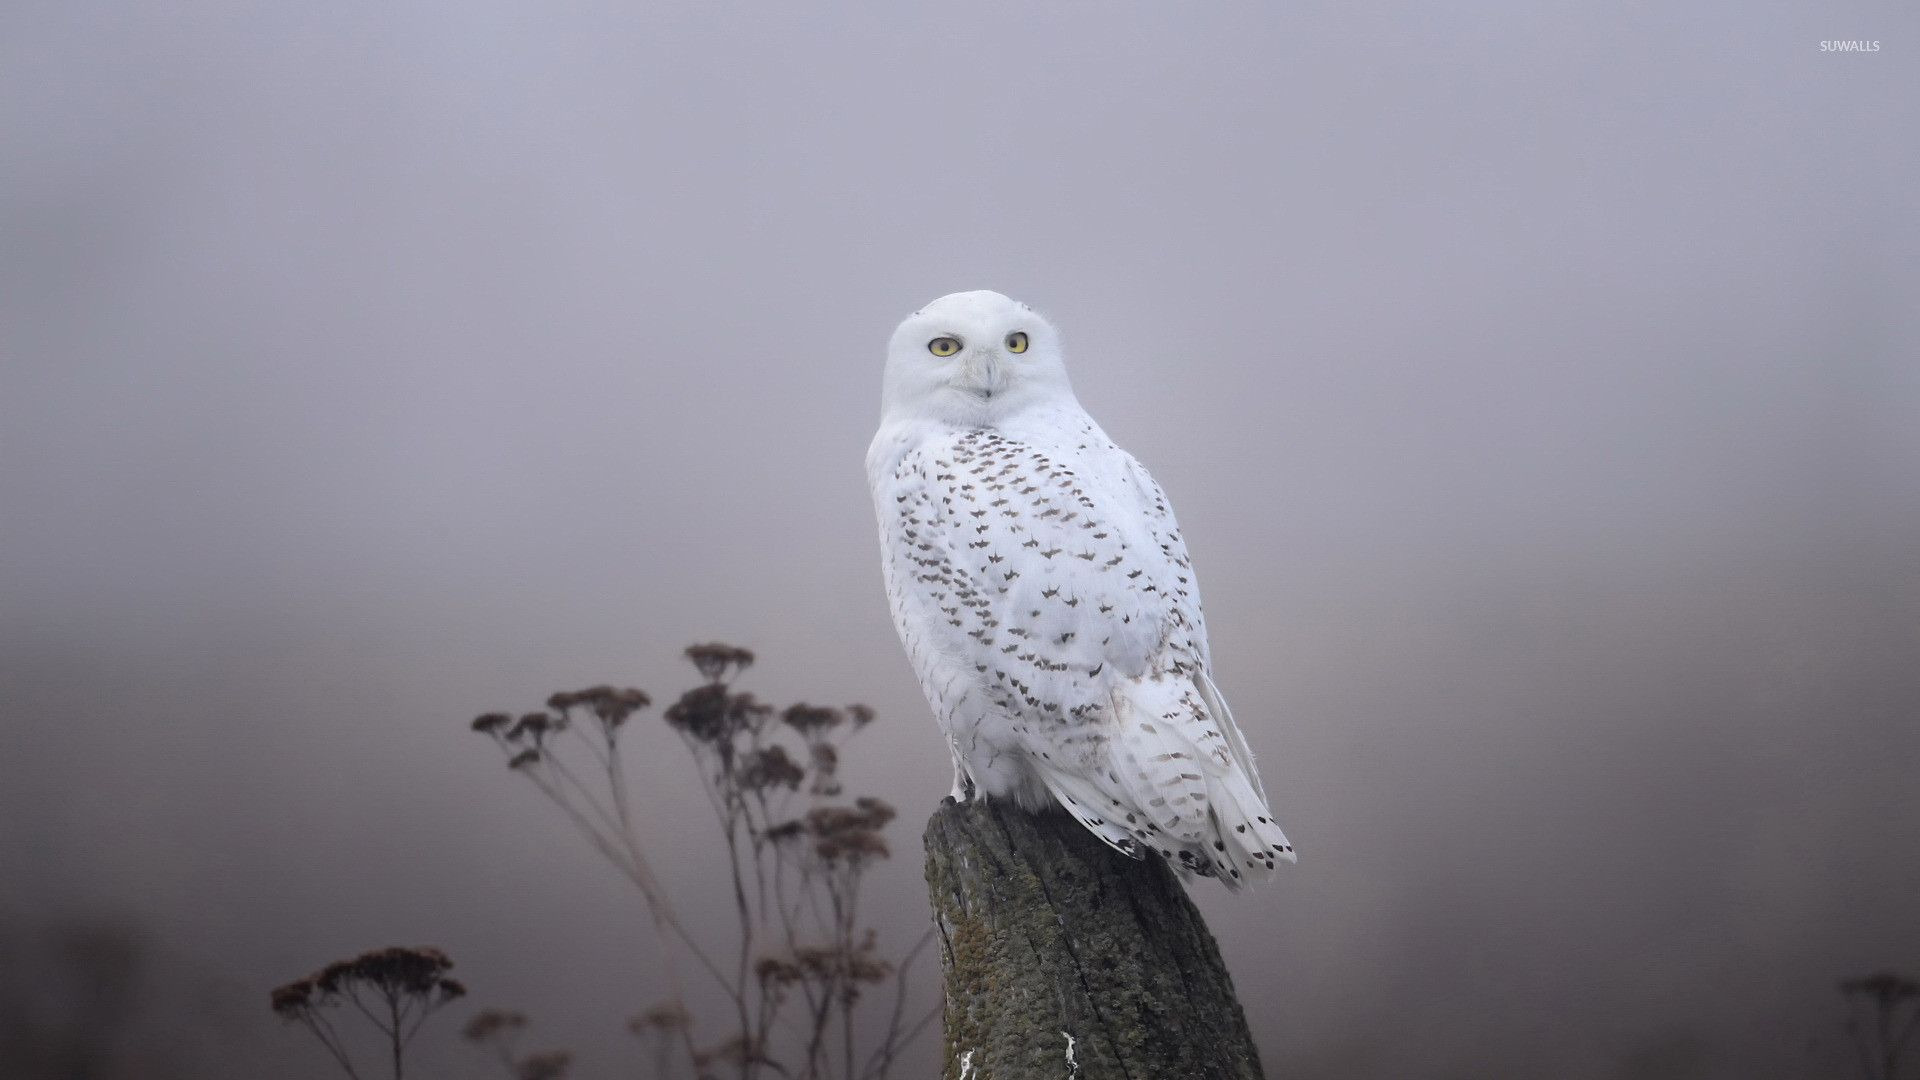 White Owl Wallpapers Top Free White Owl Backgrounds